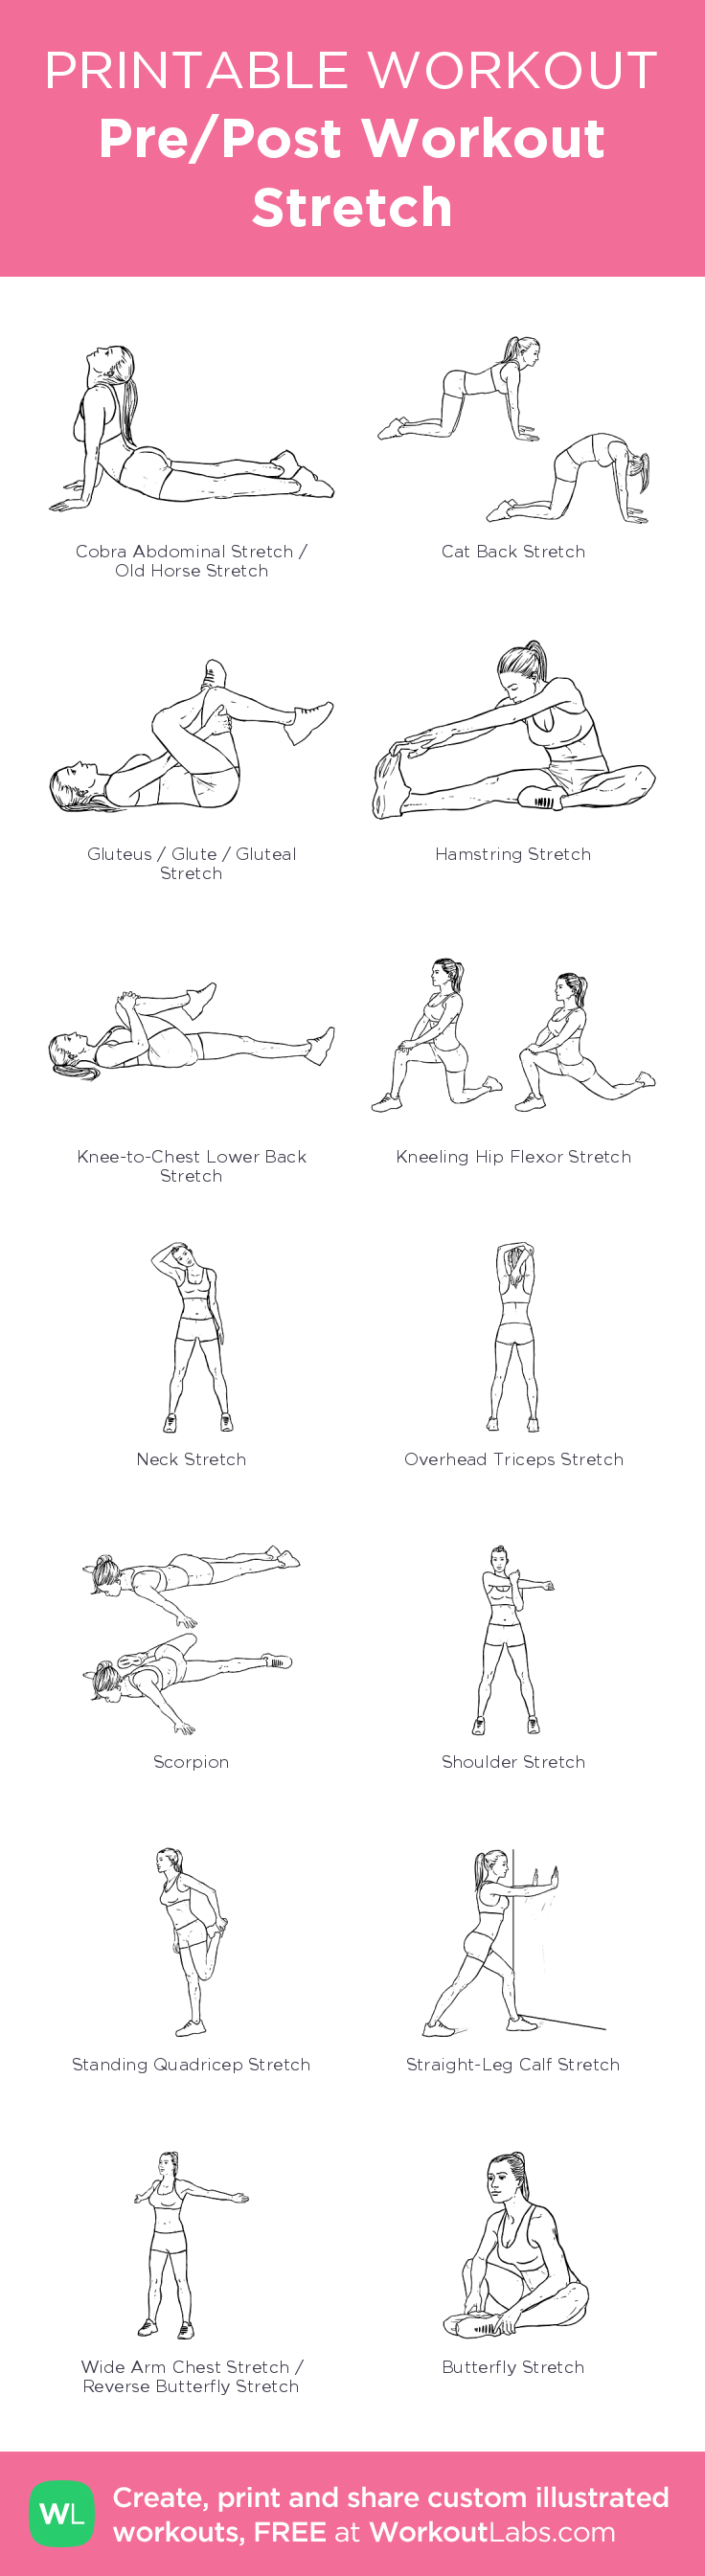 Pre/Post Workout Stretch– my custom exercise plan created at WorkoutLabs.com • Click through to download as a printable workout PDF #customworkout